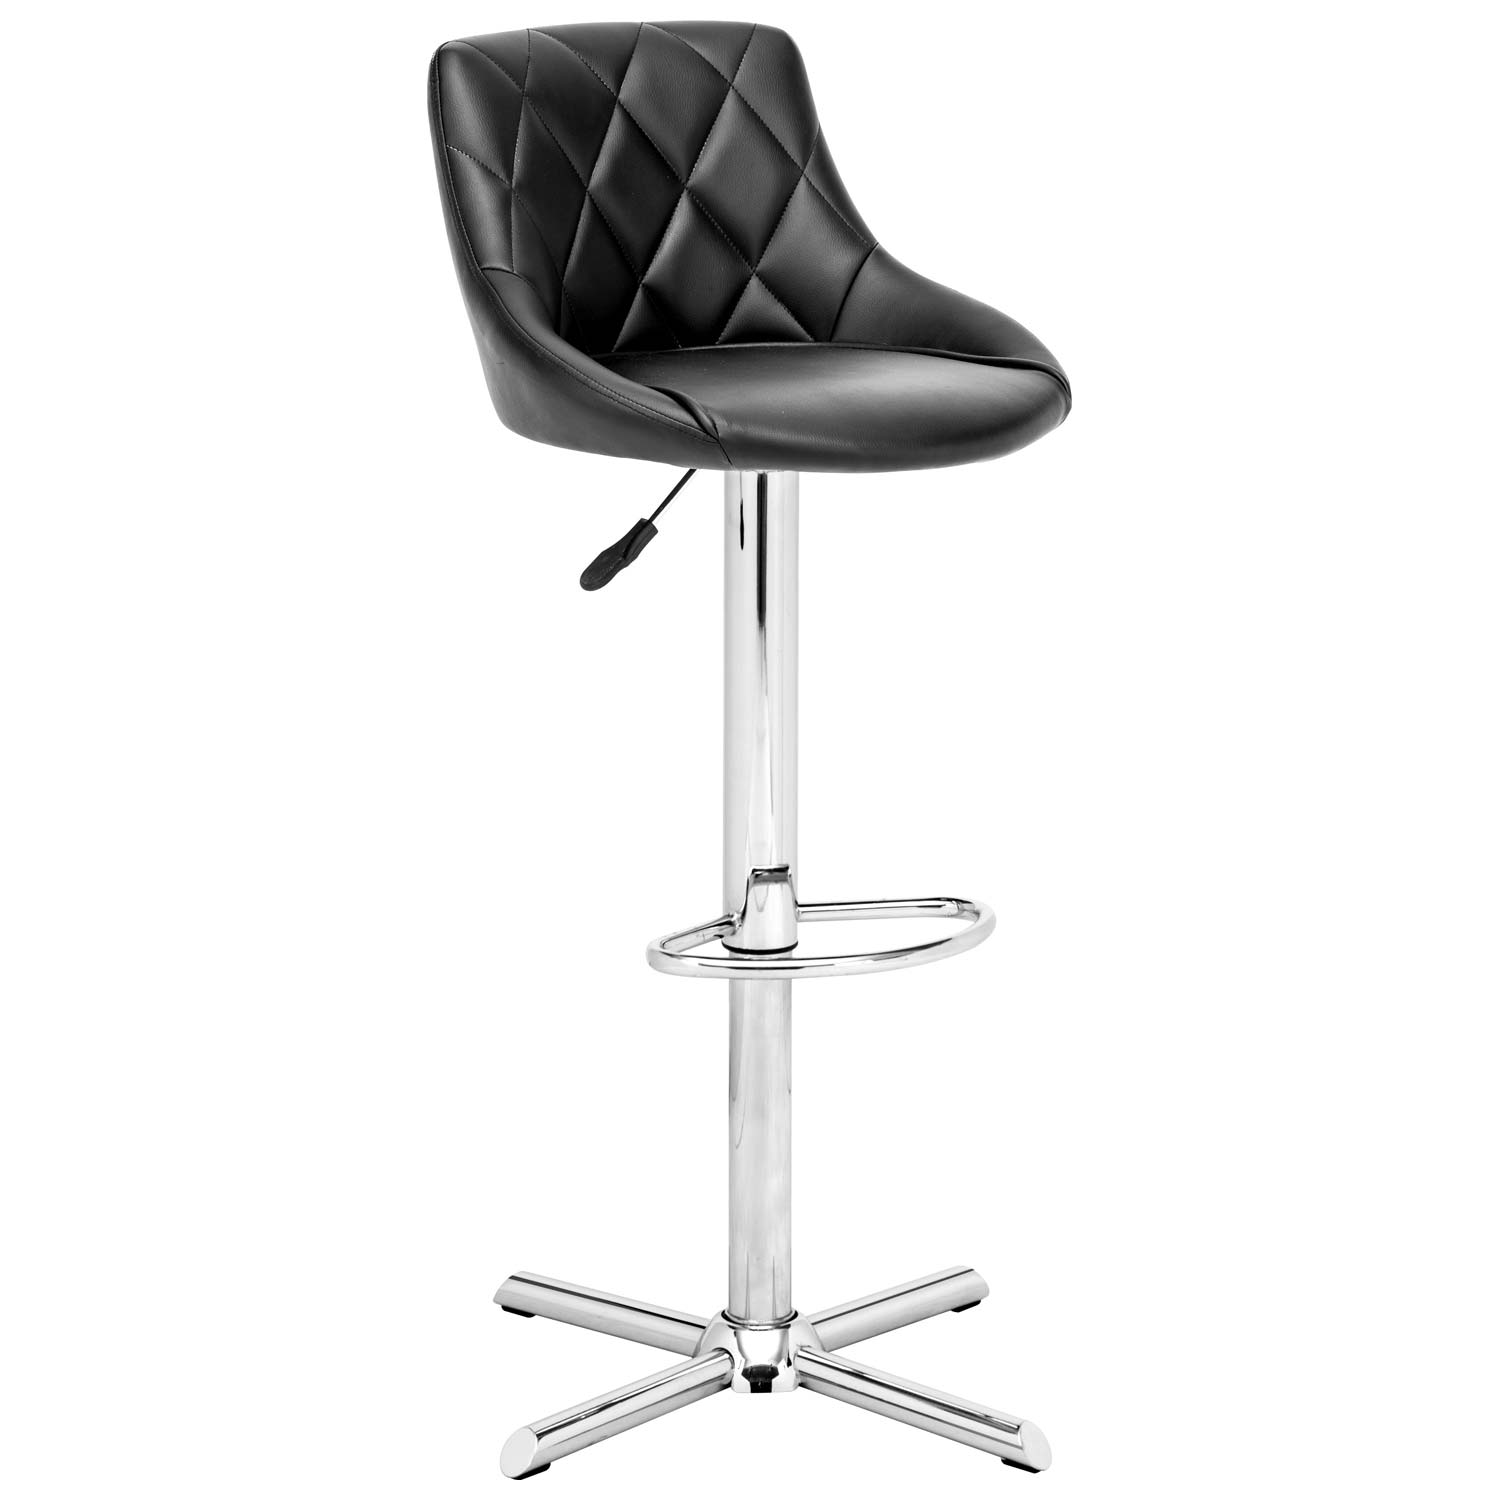 Devilin Diamond Tufted Bar Stool - Chrome Steel, Black